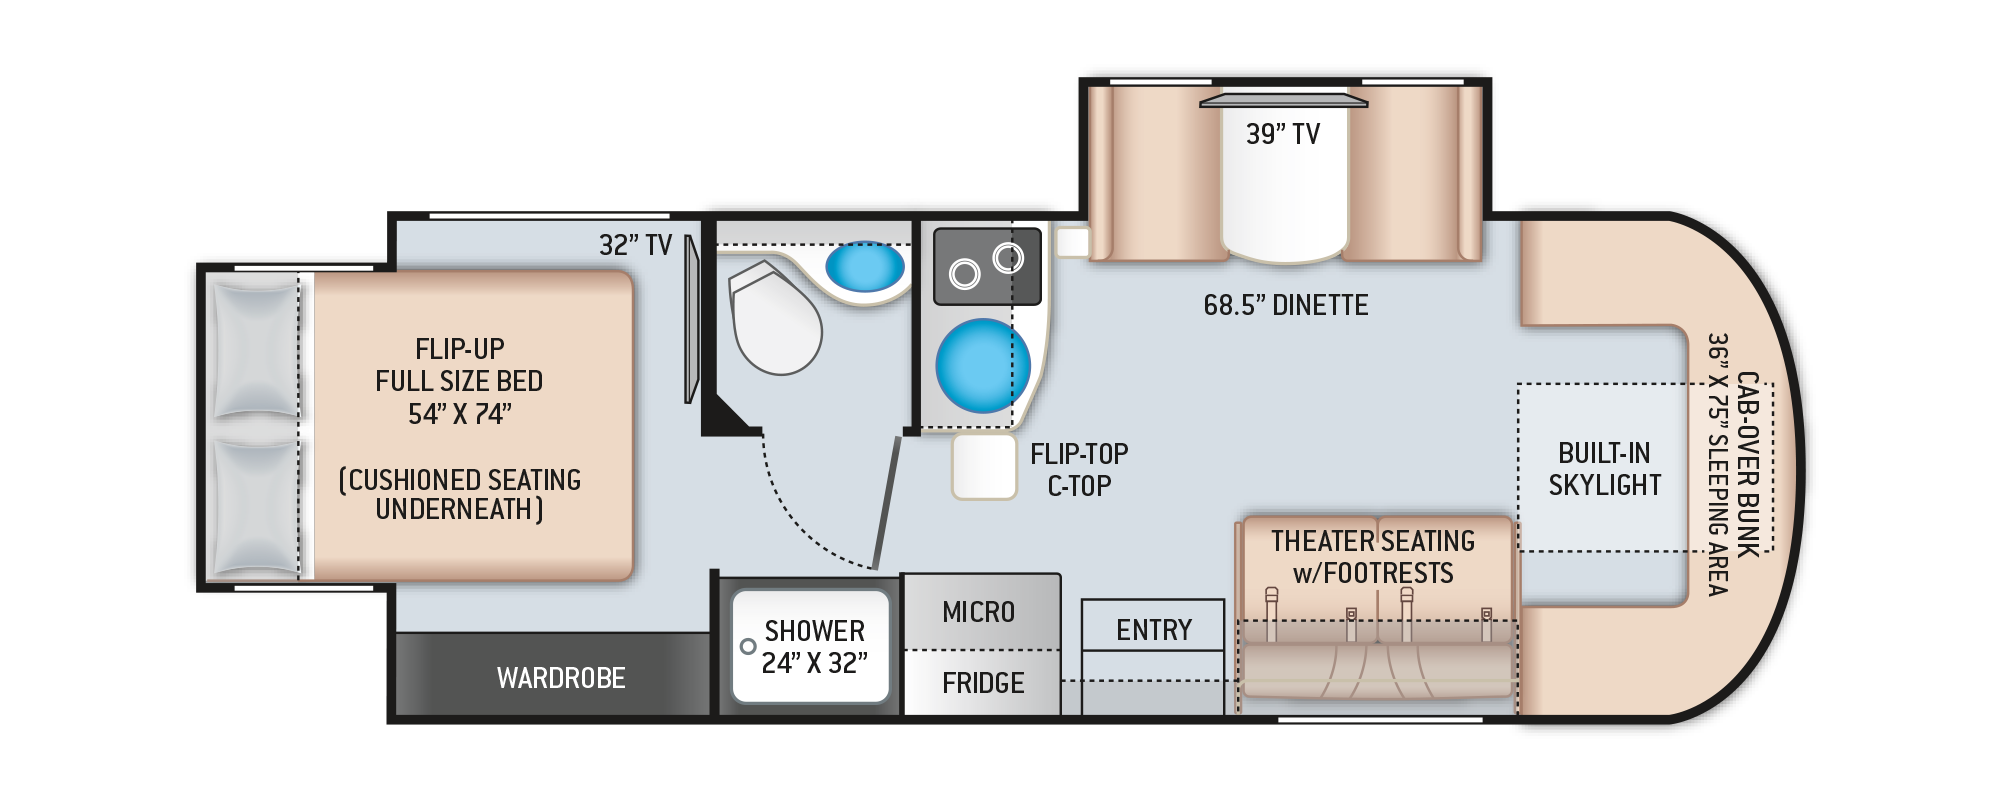 Delano Mercedes Sprinter RV 24RW Floor Plan